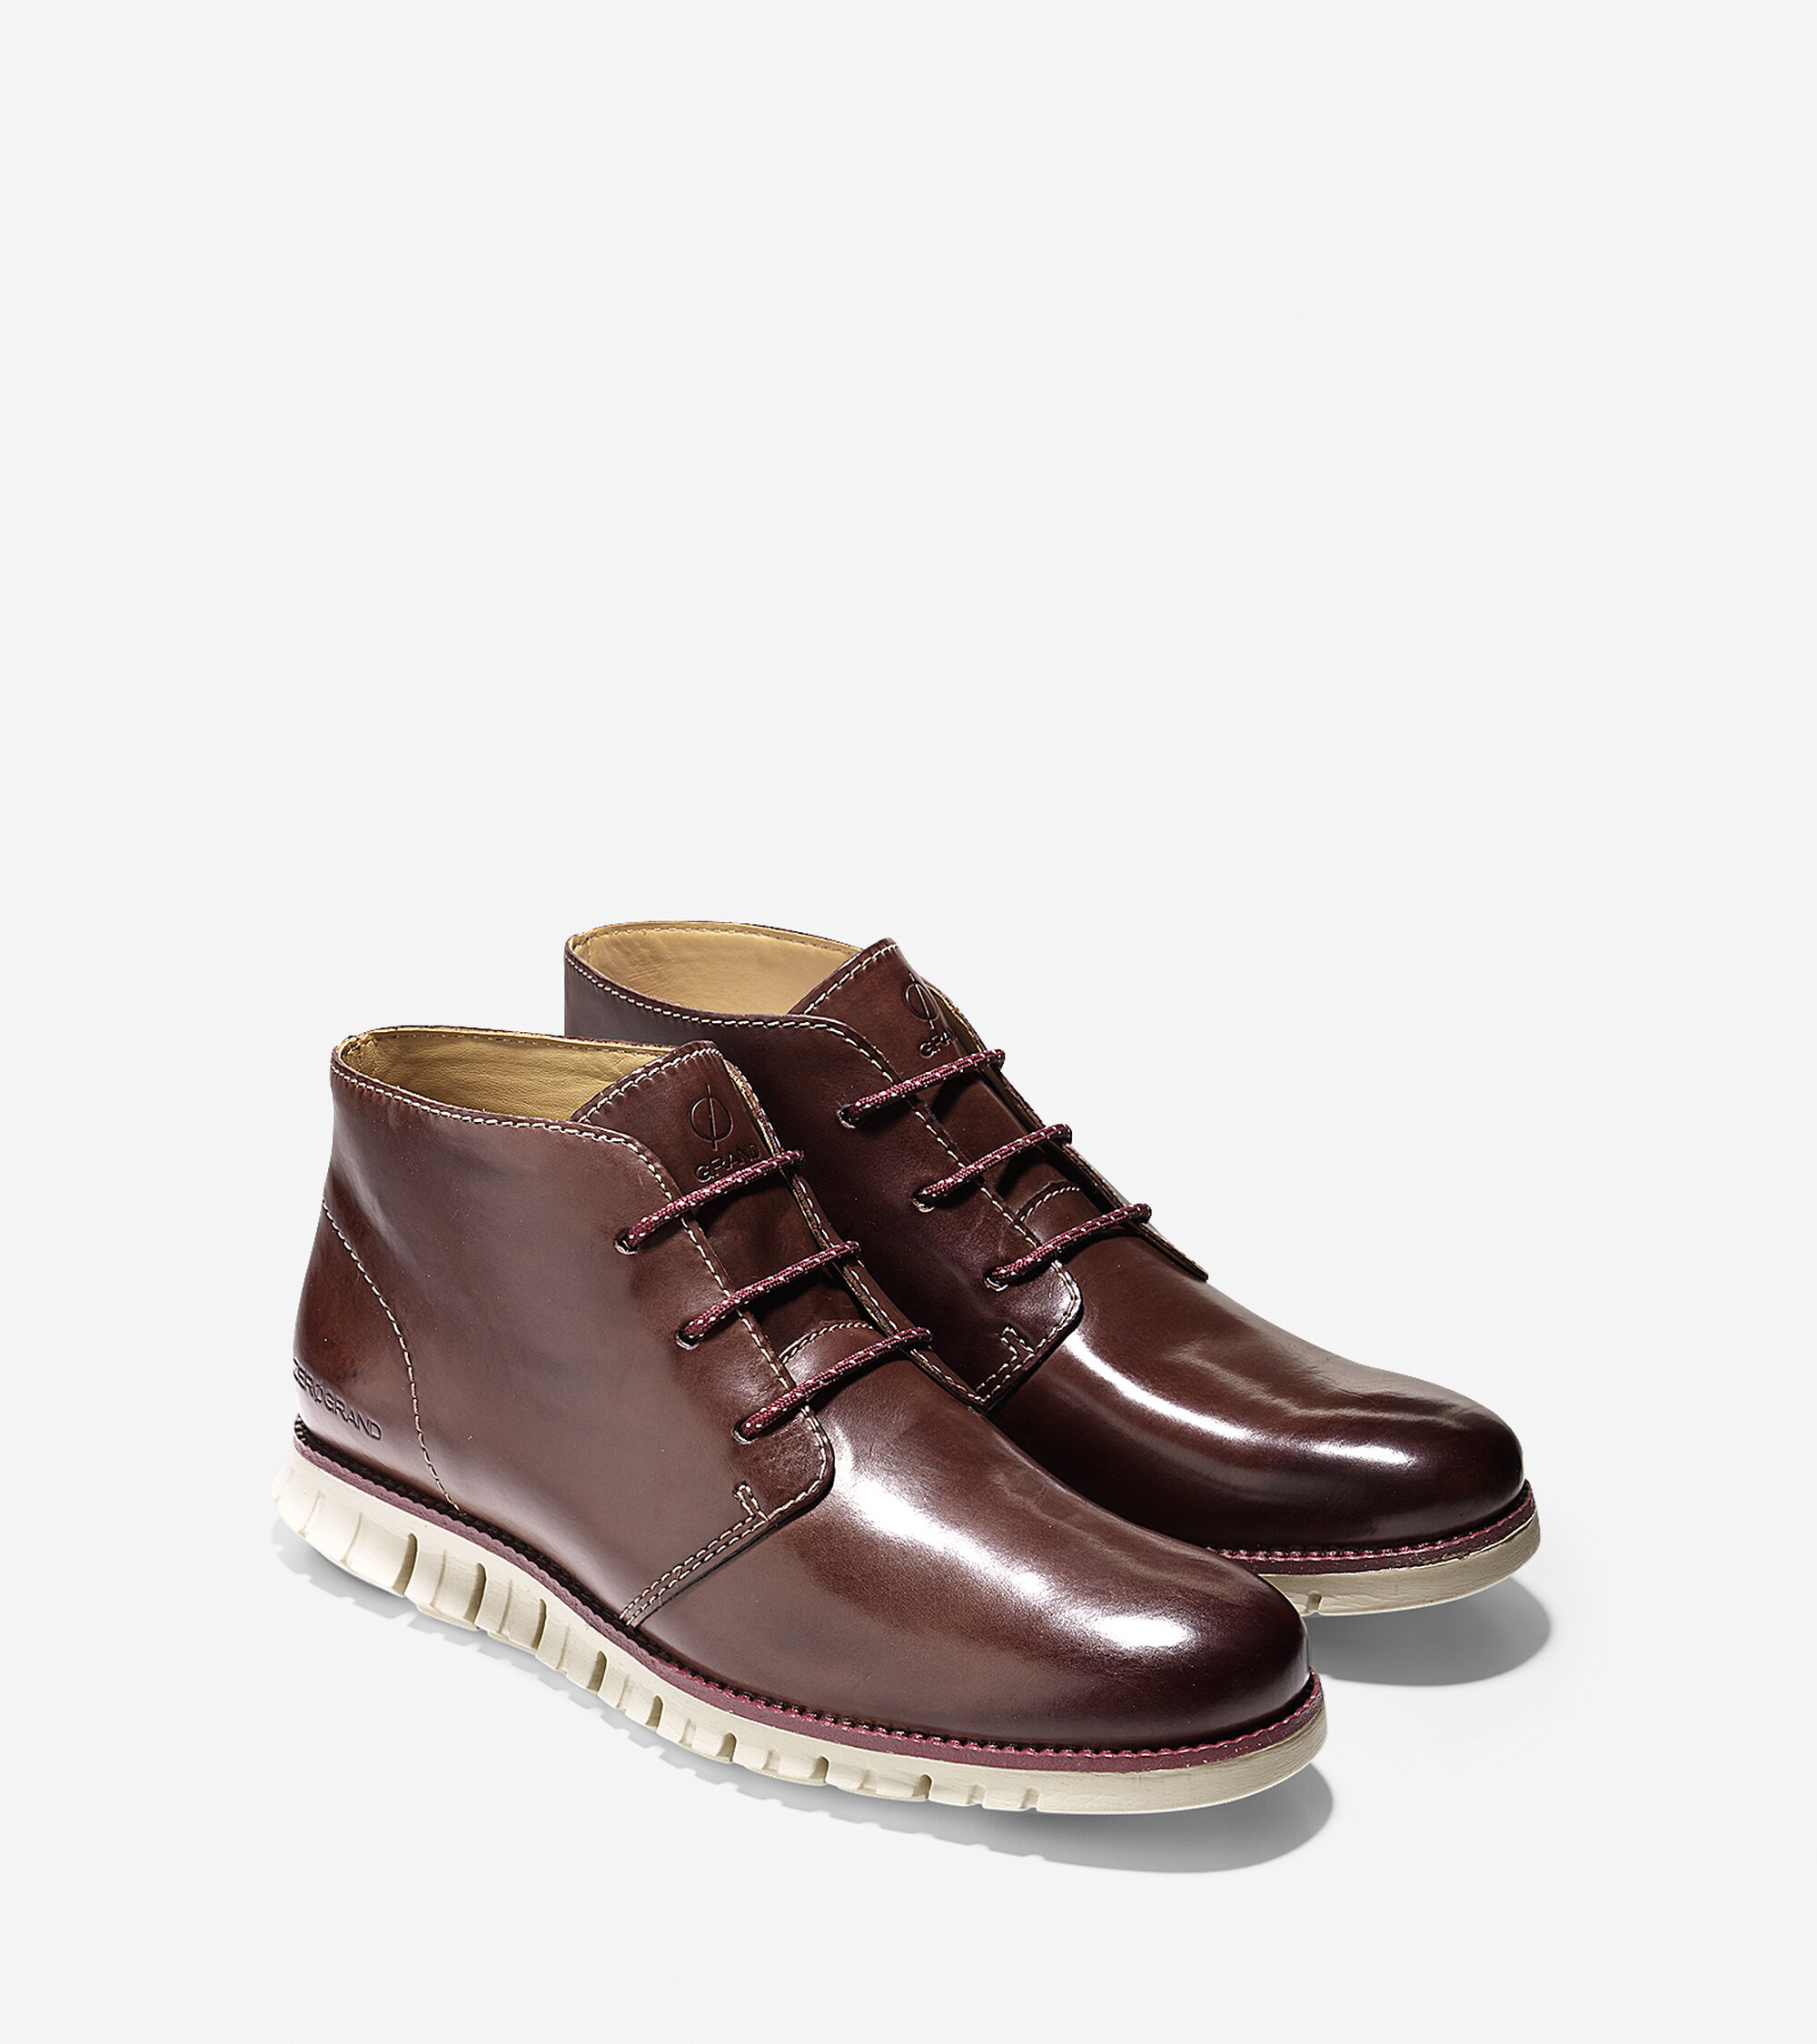 chestnut men Get free shipping and free returns on ugg® shoes, slippers and boots for men, including chukkas, loafers, moccasins and more shop now at nordstromcom.